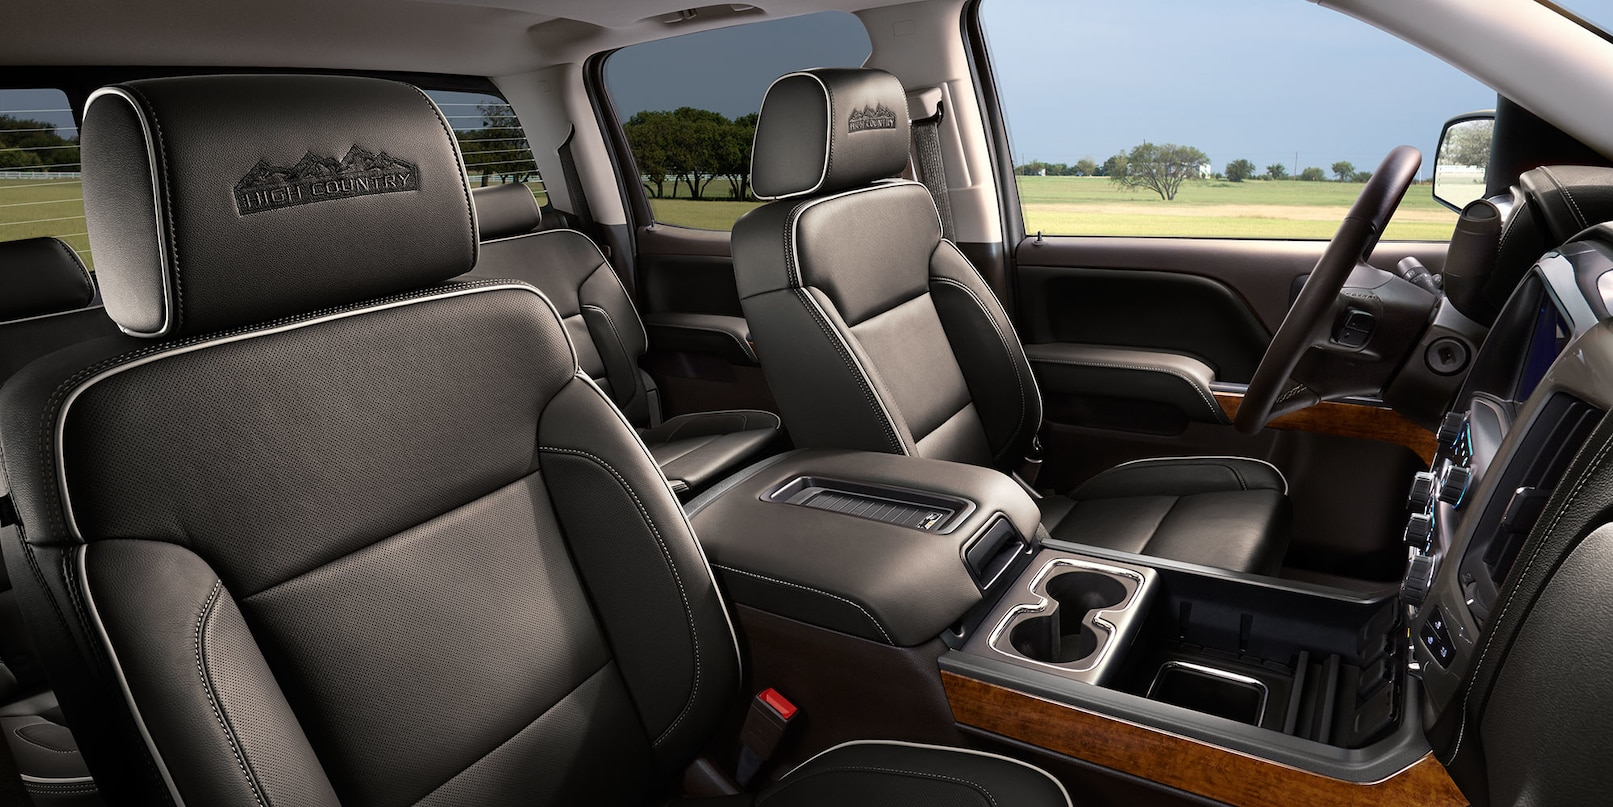 Accommodating Cabin of the 2018 Chevy Silverado